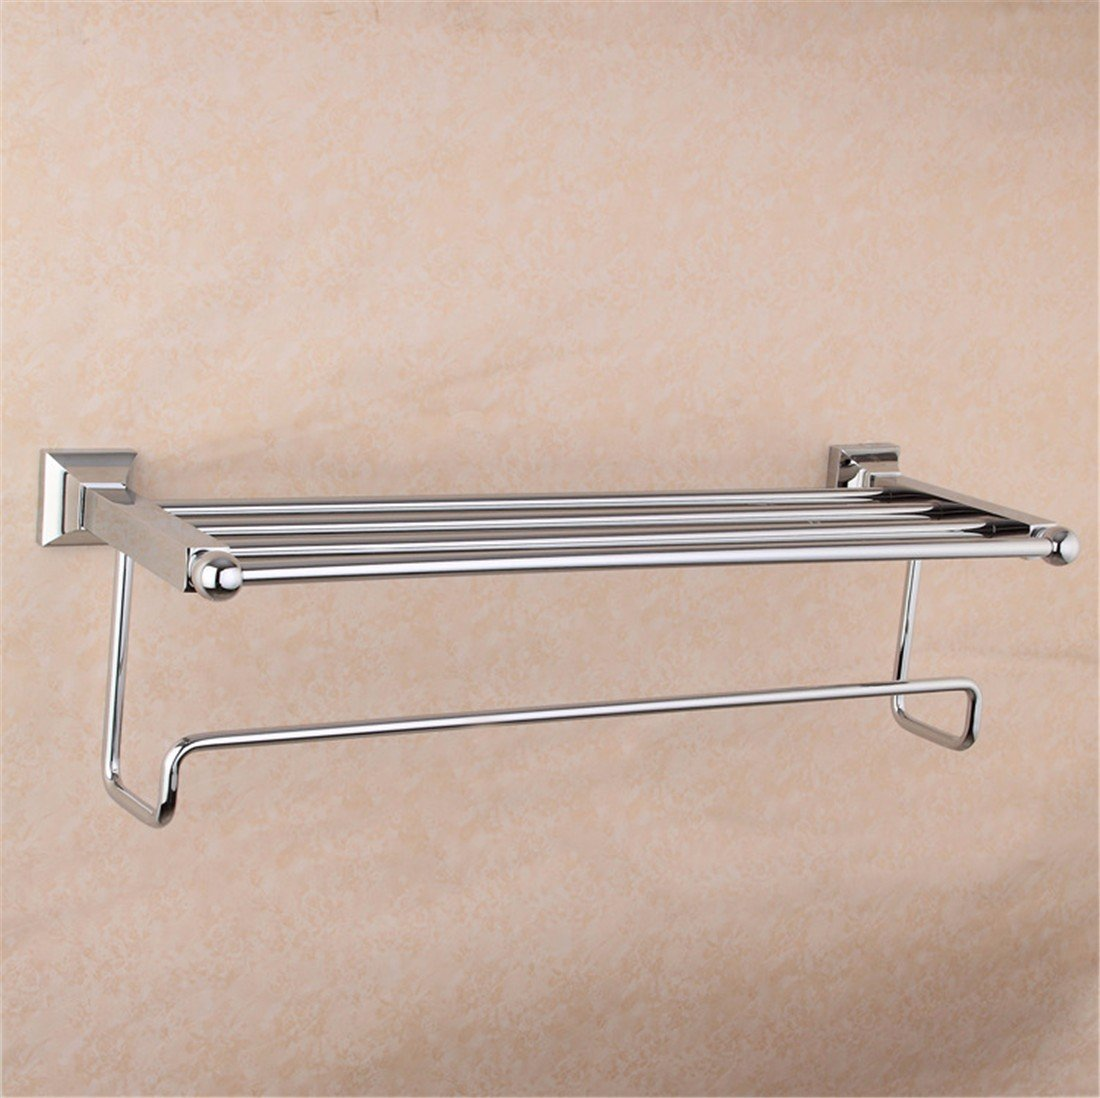 LAONA European style full copper chrome plated square base, bathroom fittings, towel ring, toothbrush cup holder,Towel rack